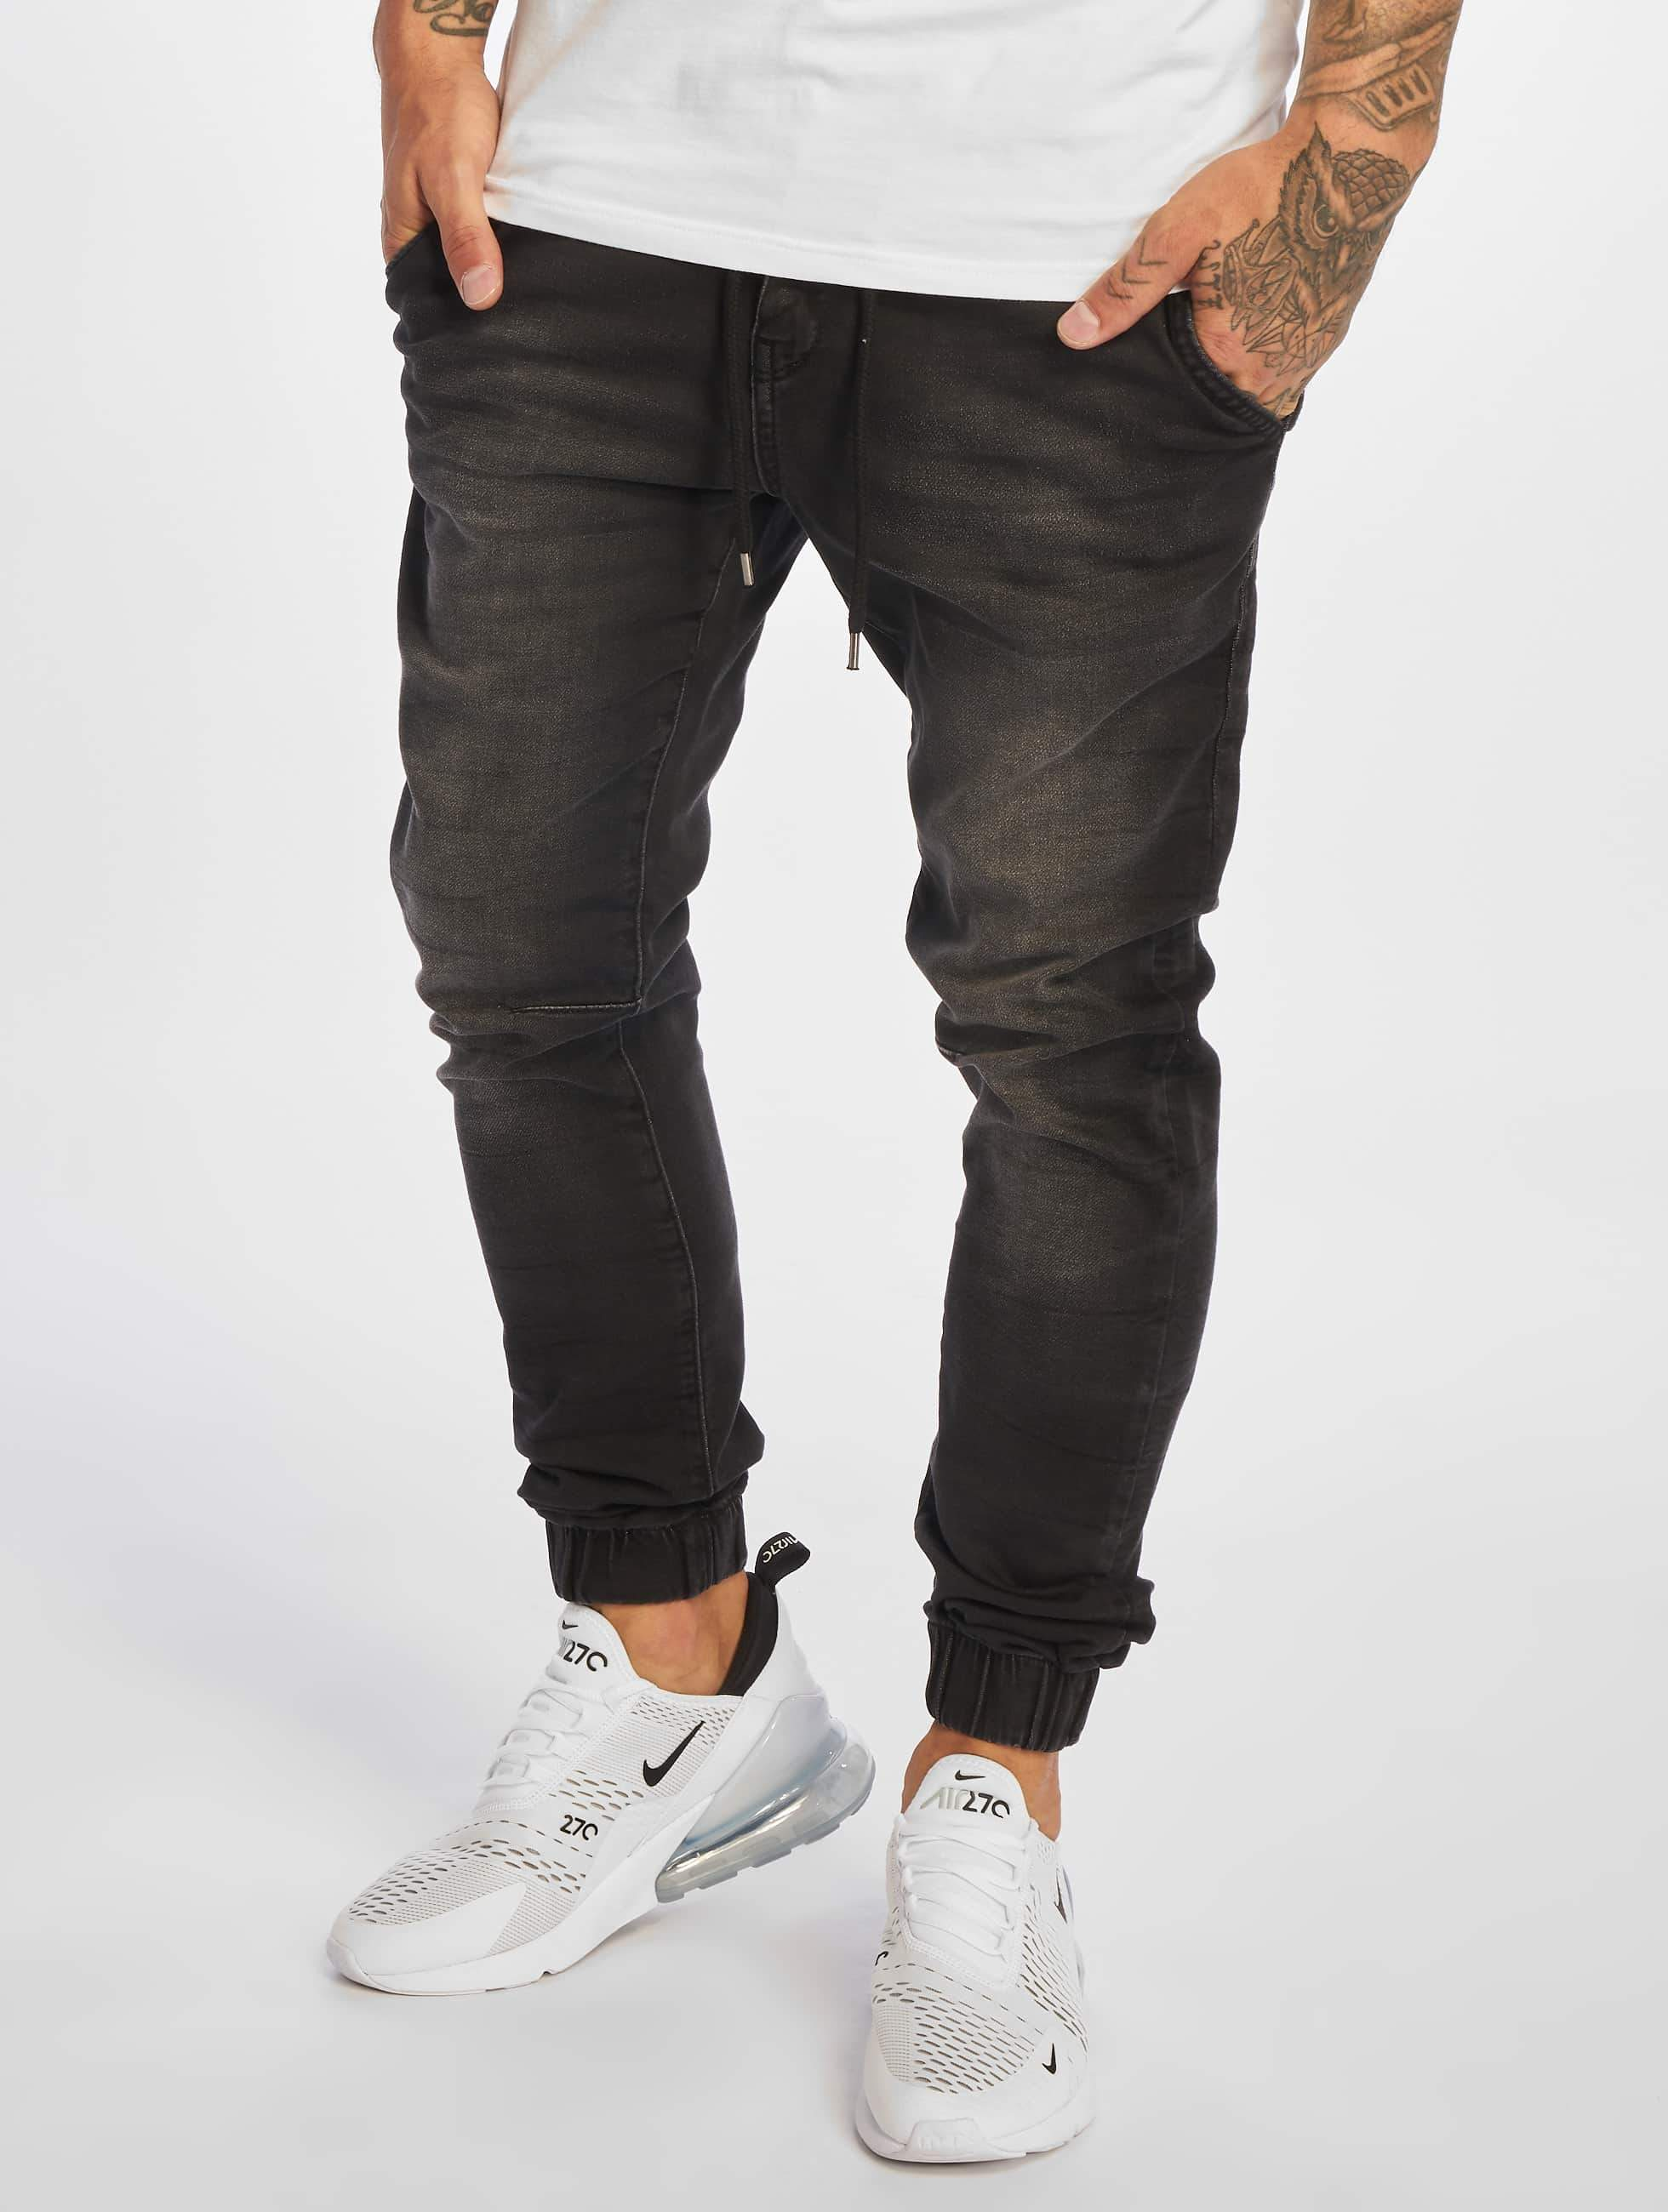 Just Rhyse / Sweat Pant San Miguel in black W 38